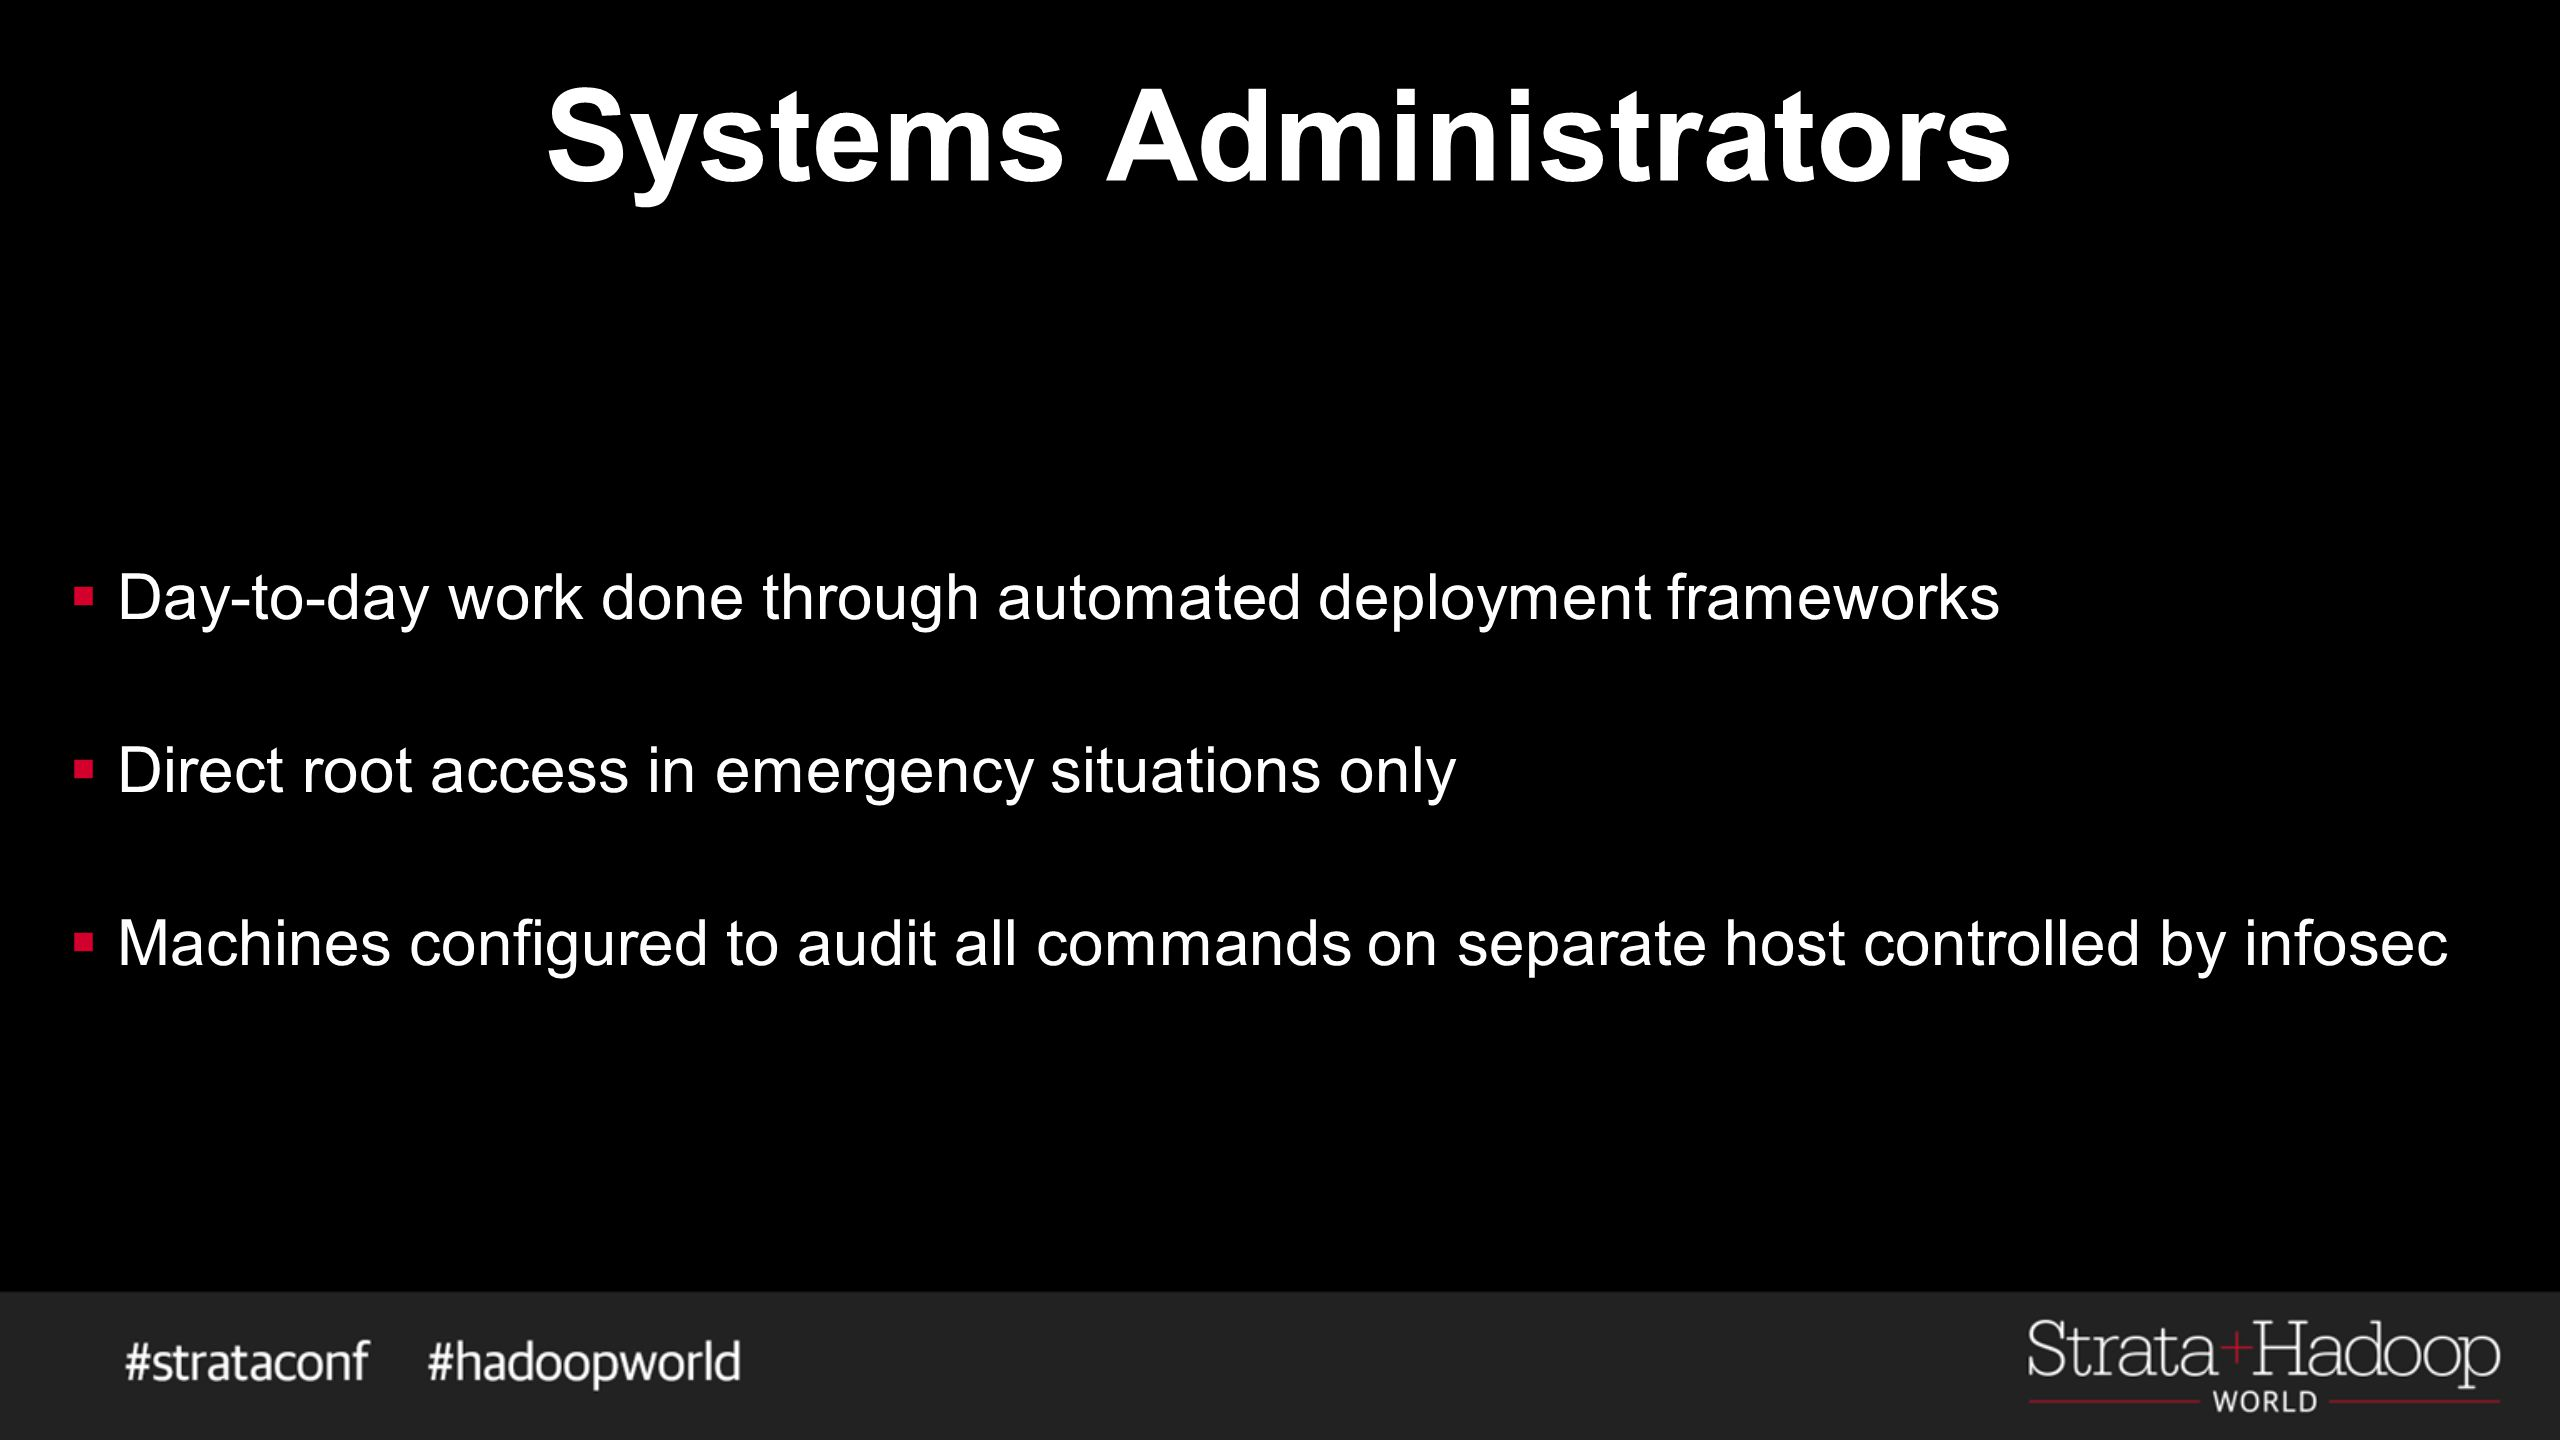 Systems Administrators  Day-to-day work done through automated deployment frameworks  Direct root access in emergency situations only  Machines configured to audit all commands on separate host controlled by infosec